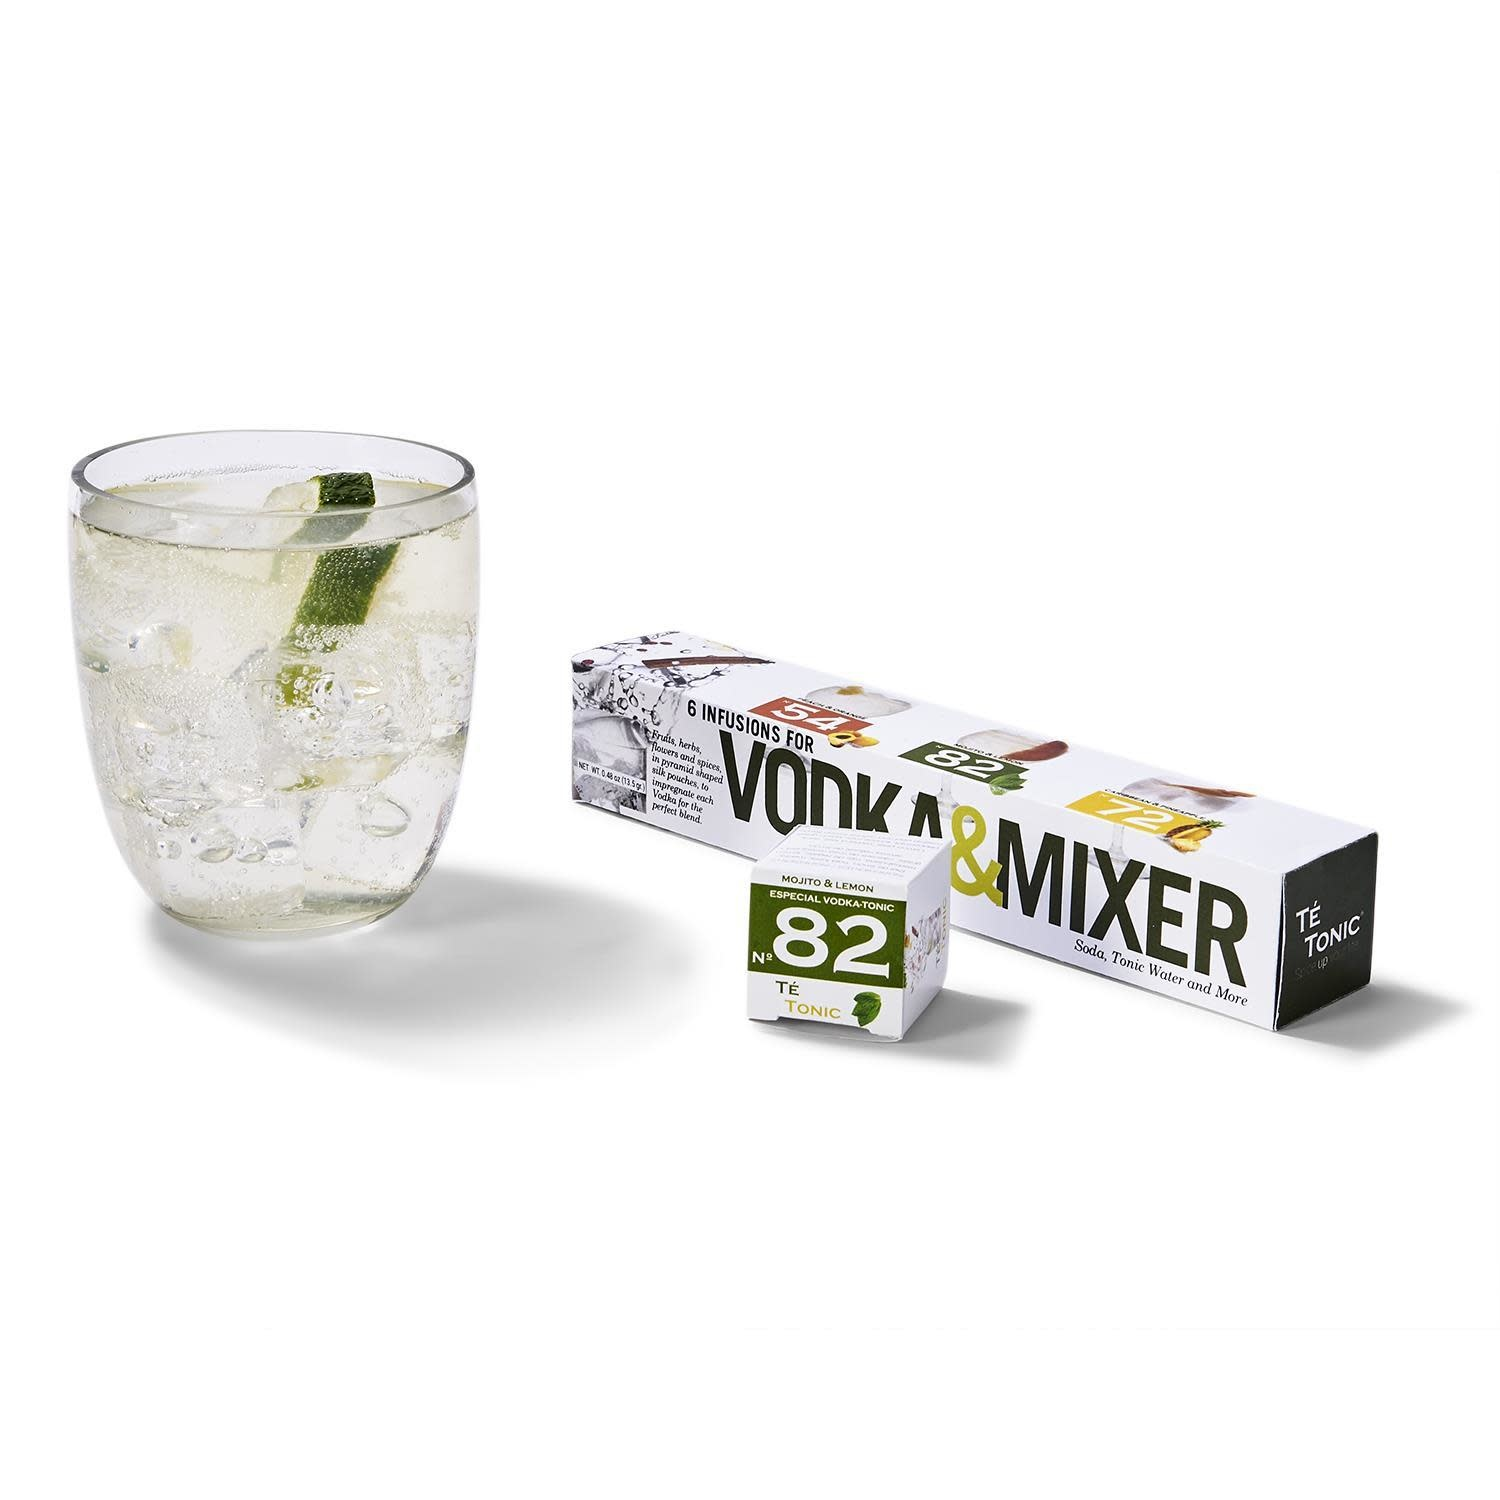 Tetonic 6 Flavor Vodka & Mixer